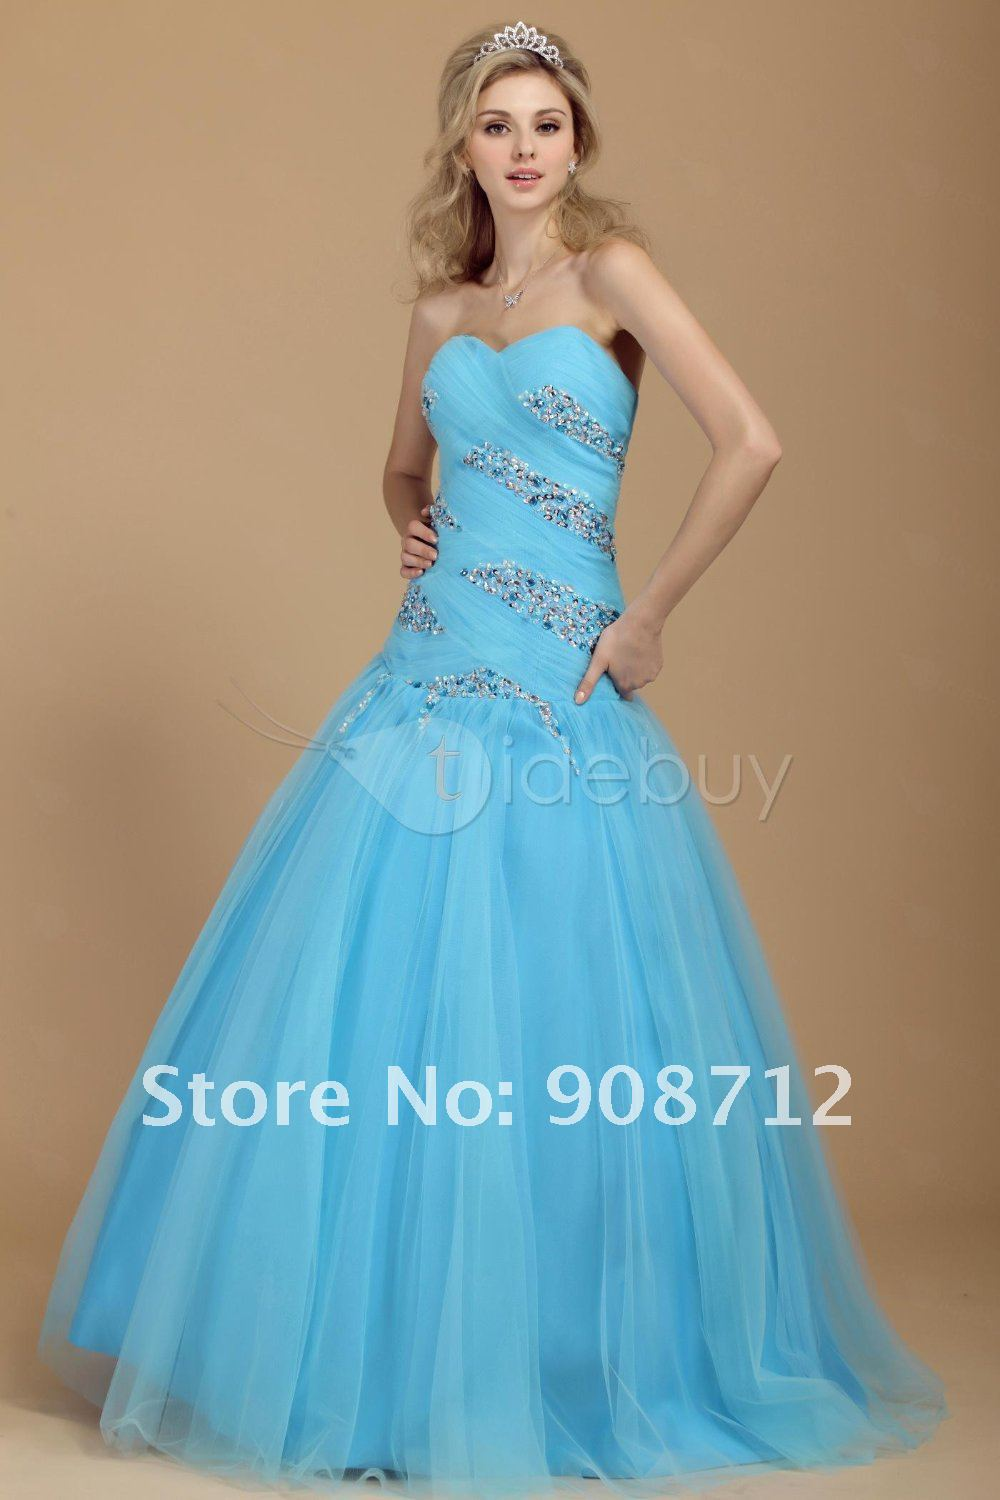 Beautiful Blue Prom Dresses | Cocktail Dresses 2016